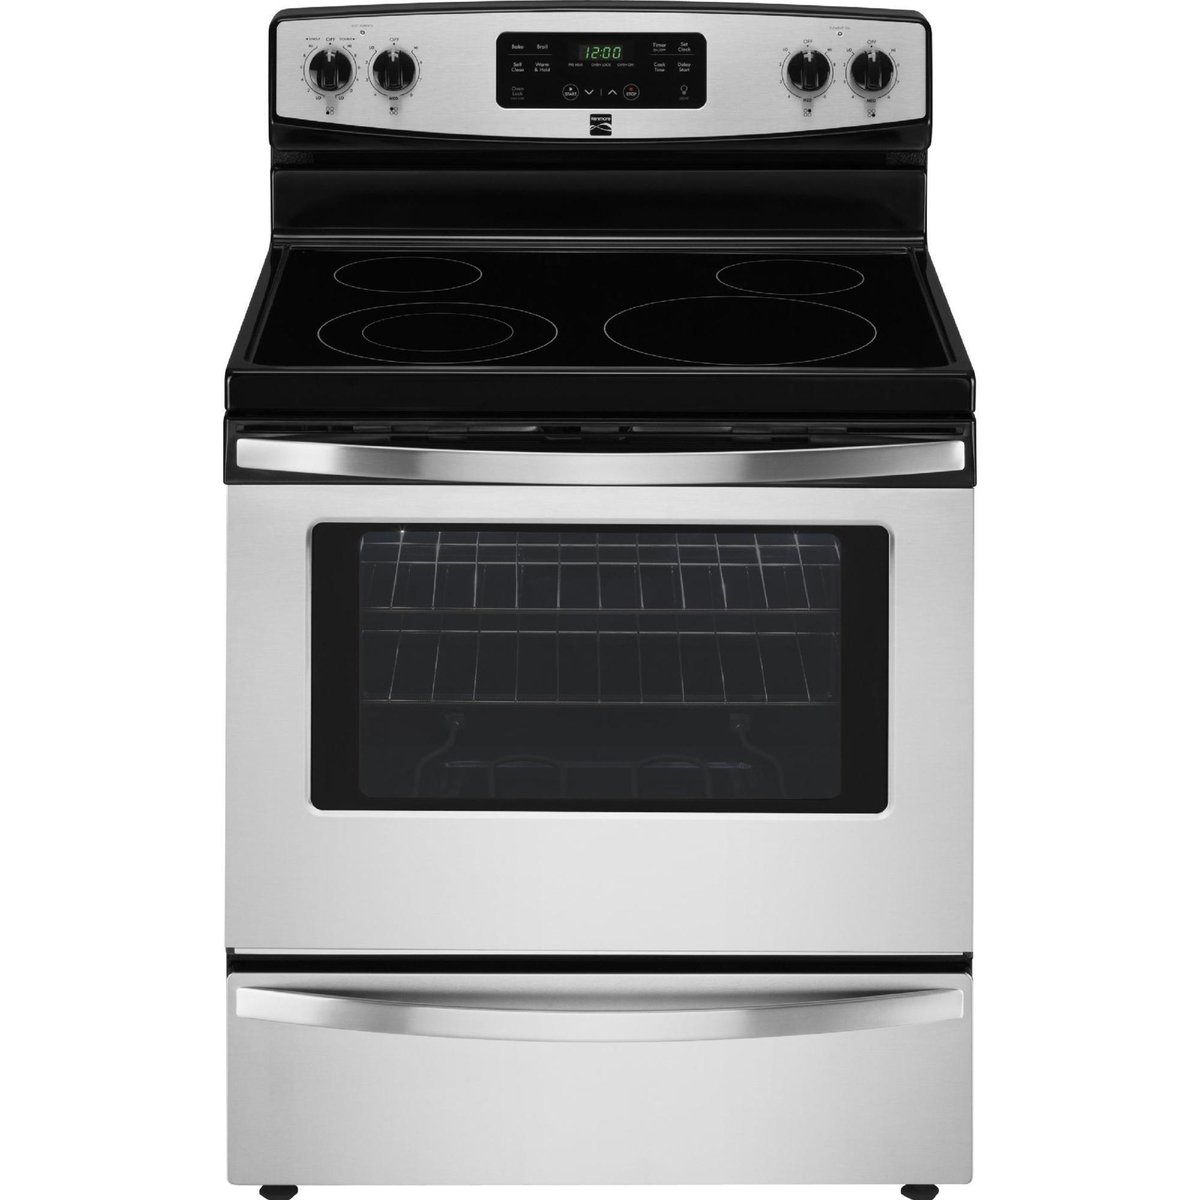 Kenmore 94173 5.3 cu. ft. Self Clean Electric Range in Stainless Steel, includes delivery and hookup 2294173